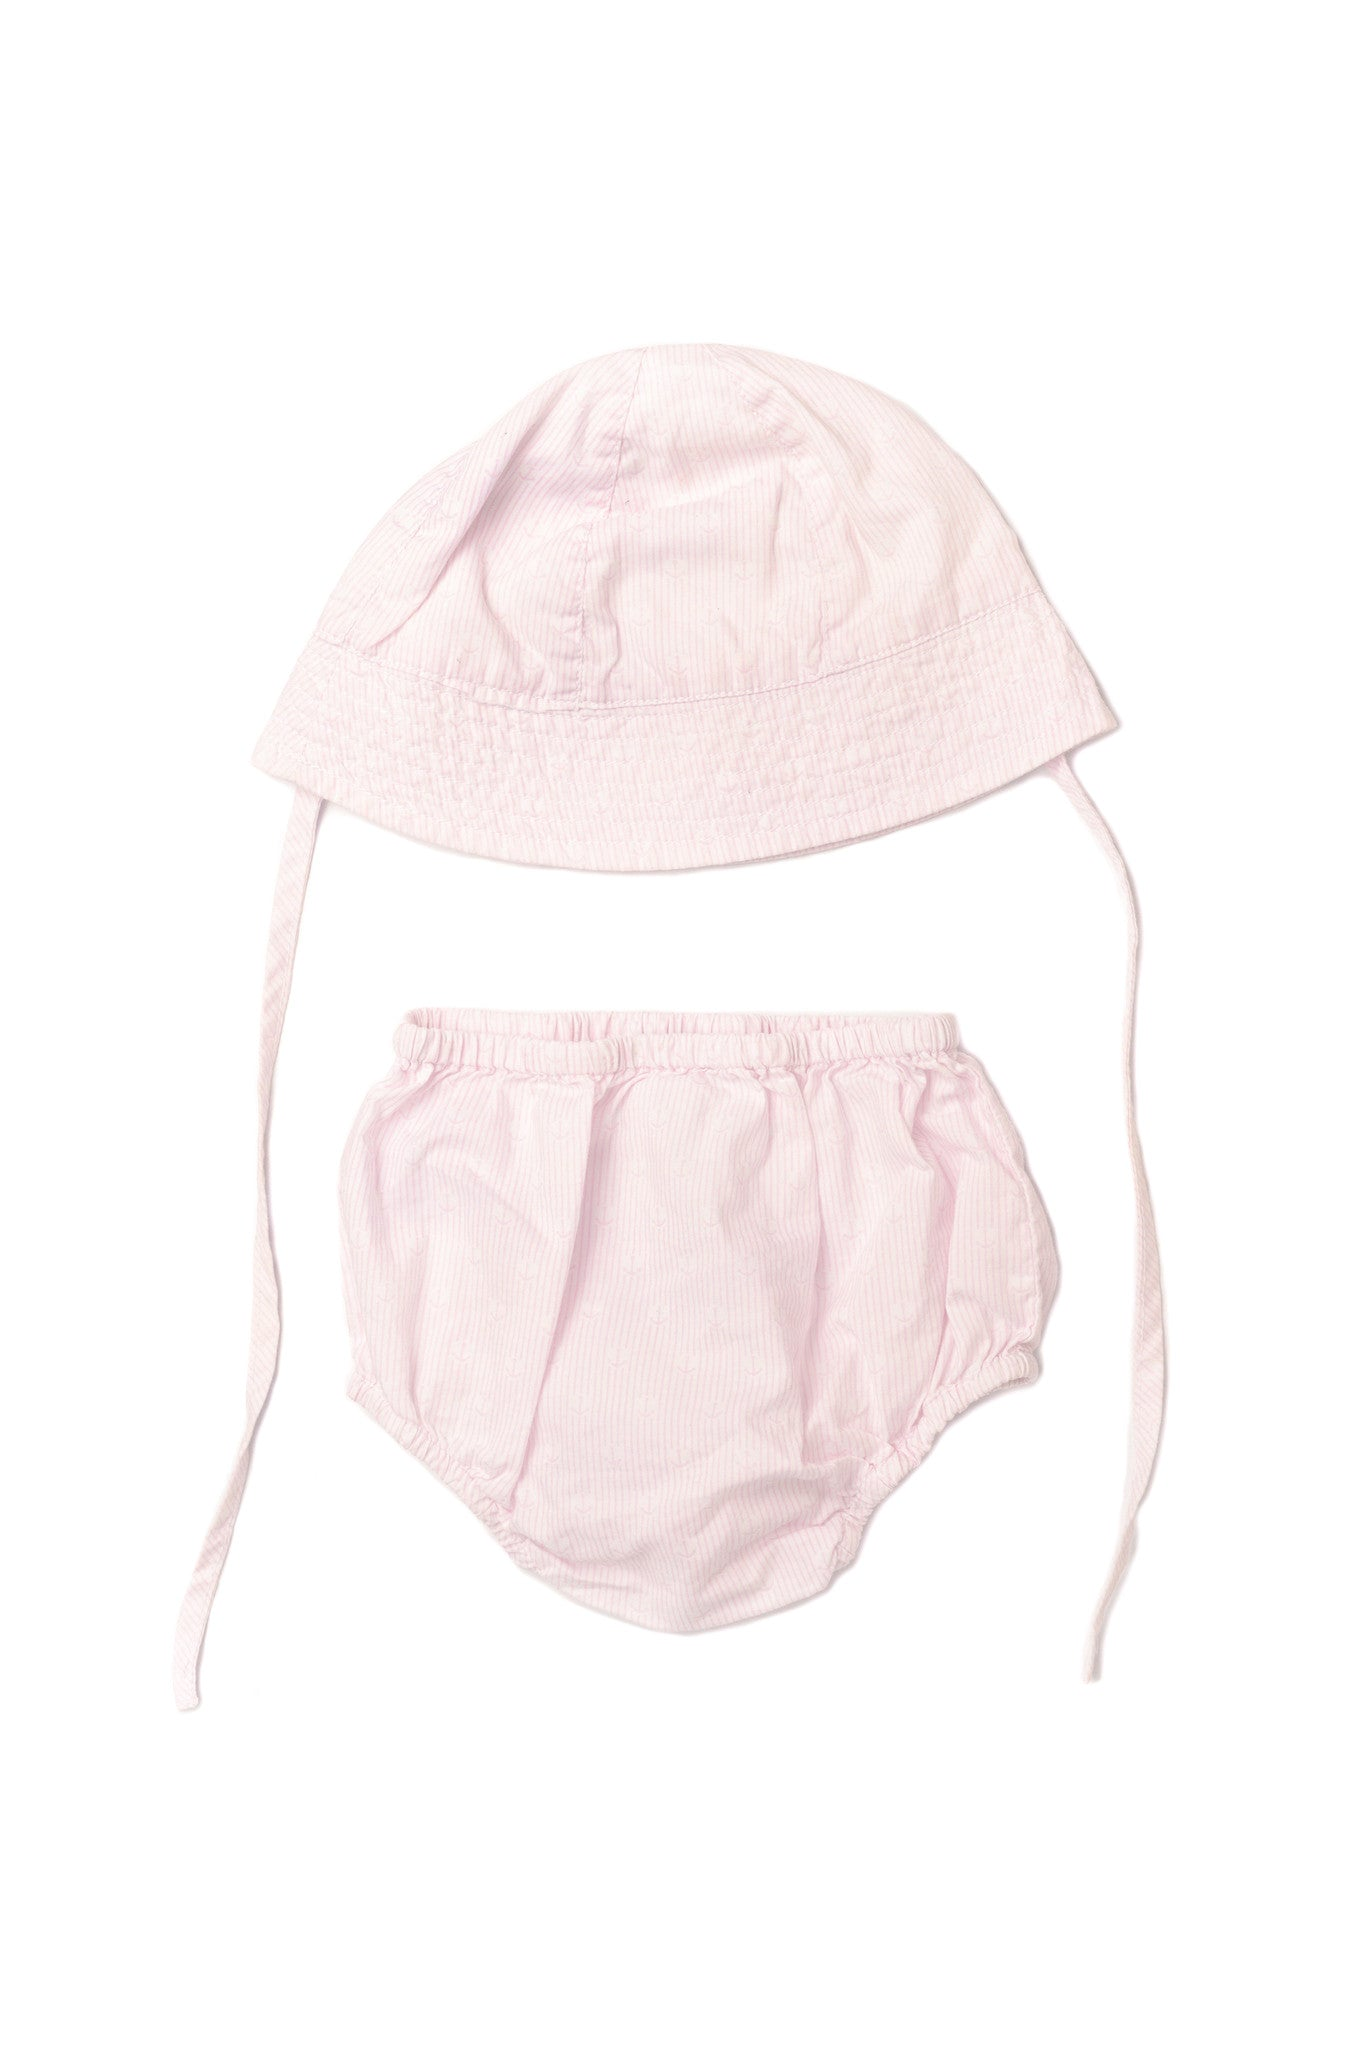 10001030 Jacadi Baby~Hat and Bloomer 0-3M at Retykle